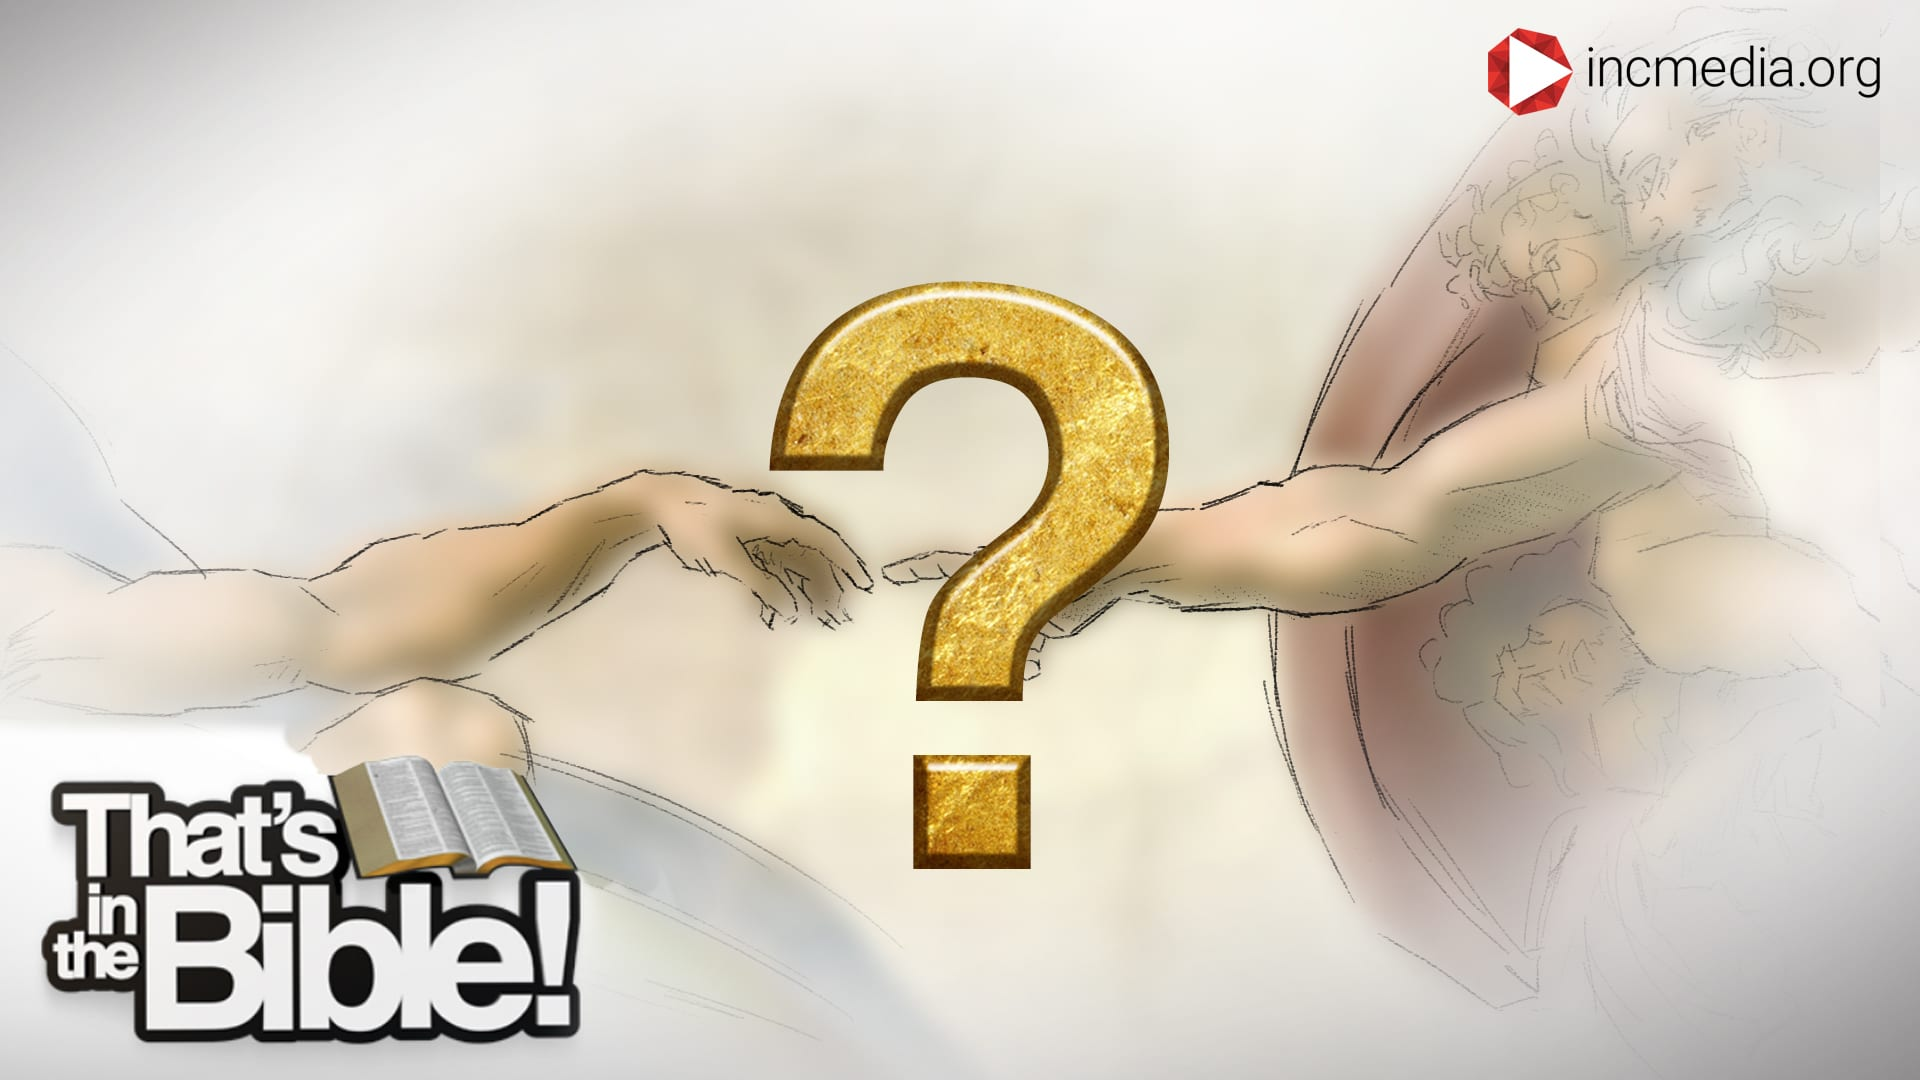 image from the Sistine chapel of the hand of God and Adam with a gold question mark